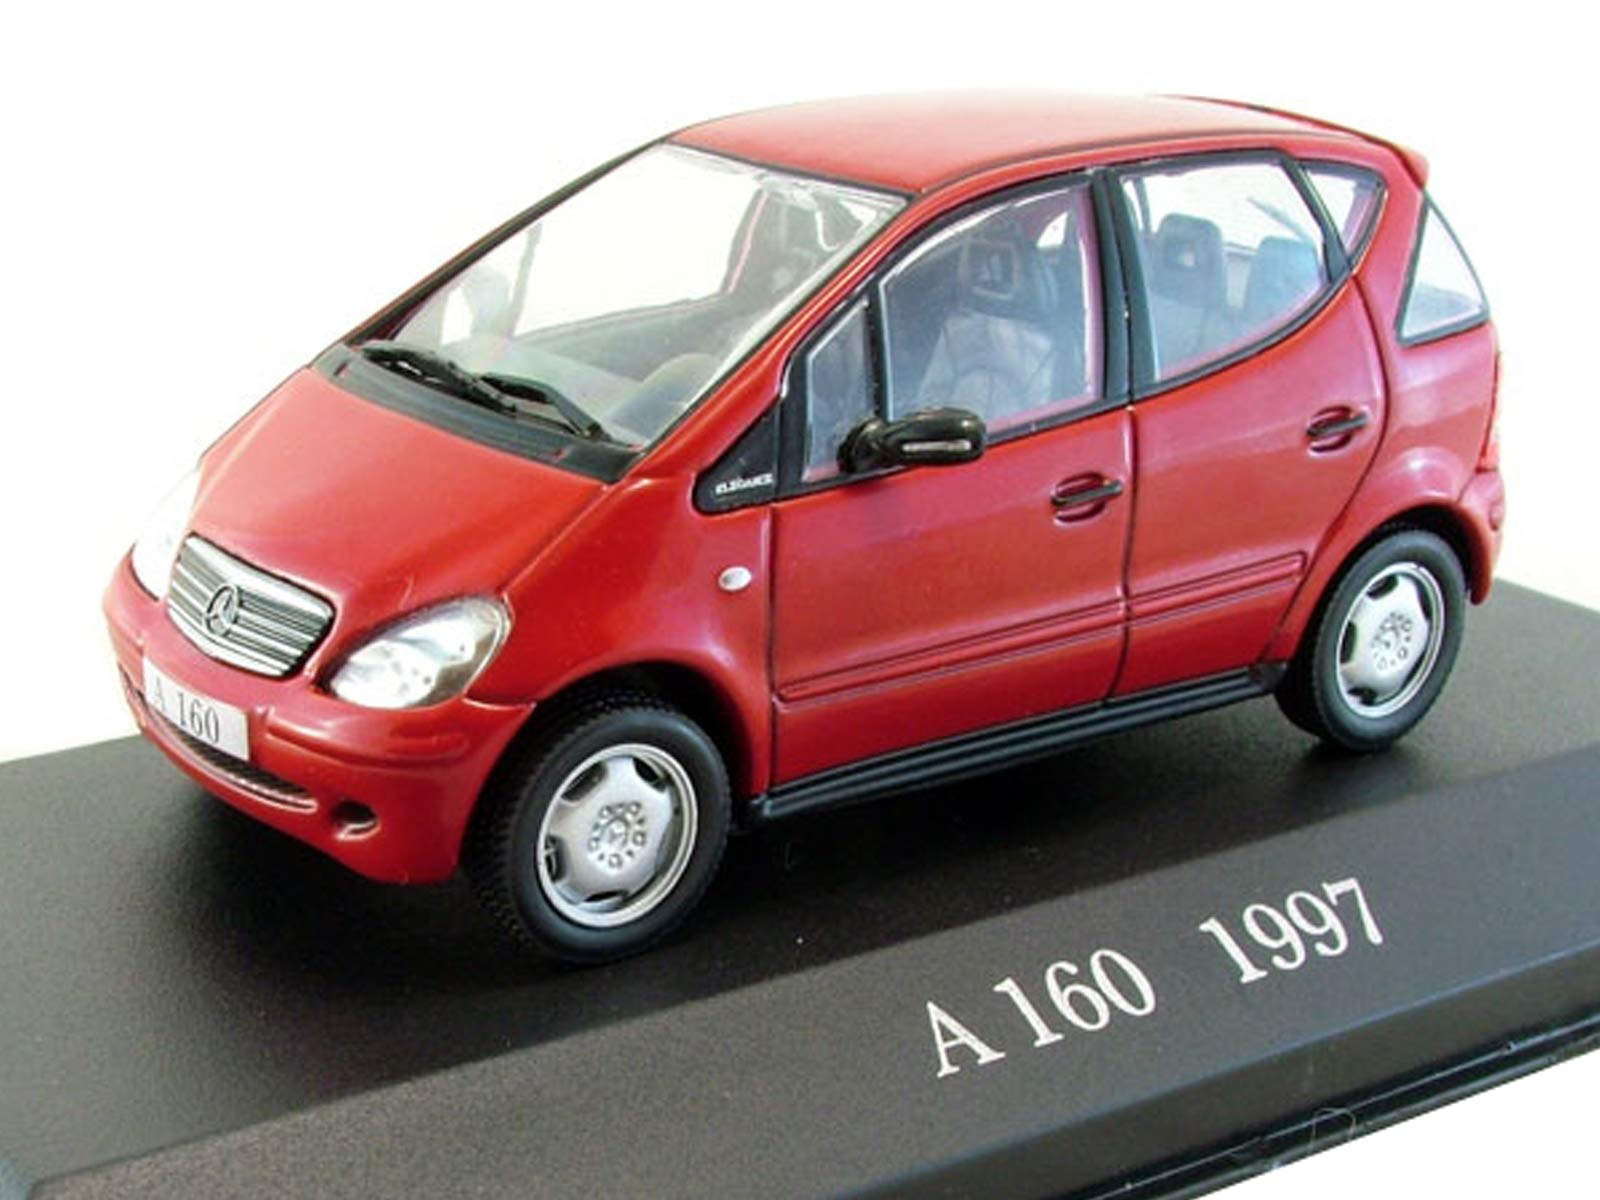 Mercedes-Benz A 160 Red 1997 Year German Executive Car 1/43 Collectible Model Vehicle Subcompact Rear-Wheel Drive Car by Automotive Manufacturer Mercedes-Benz